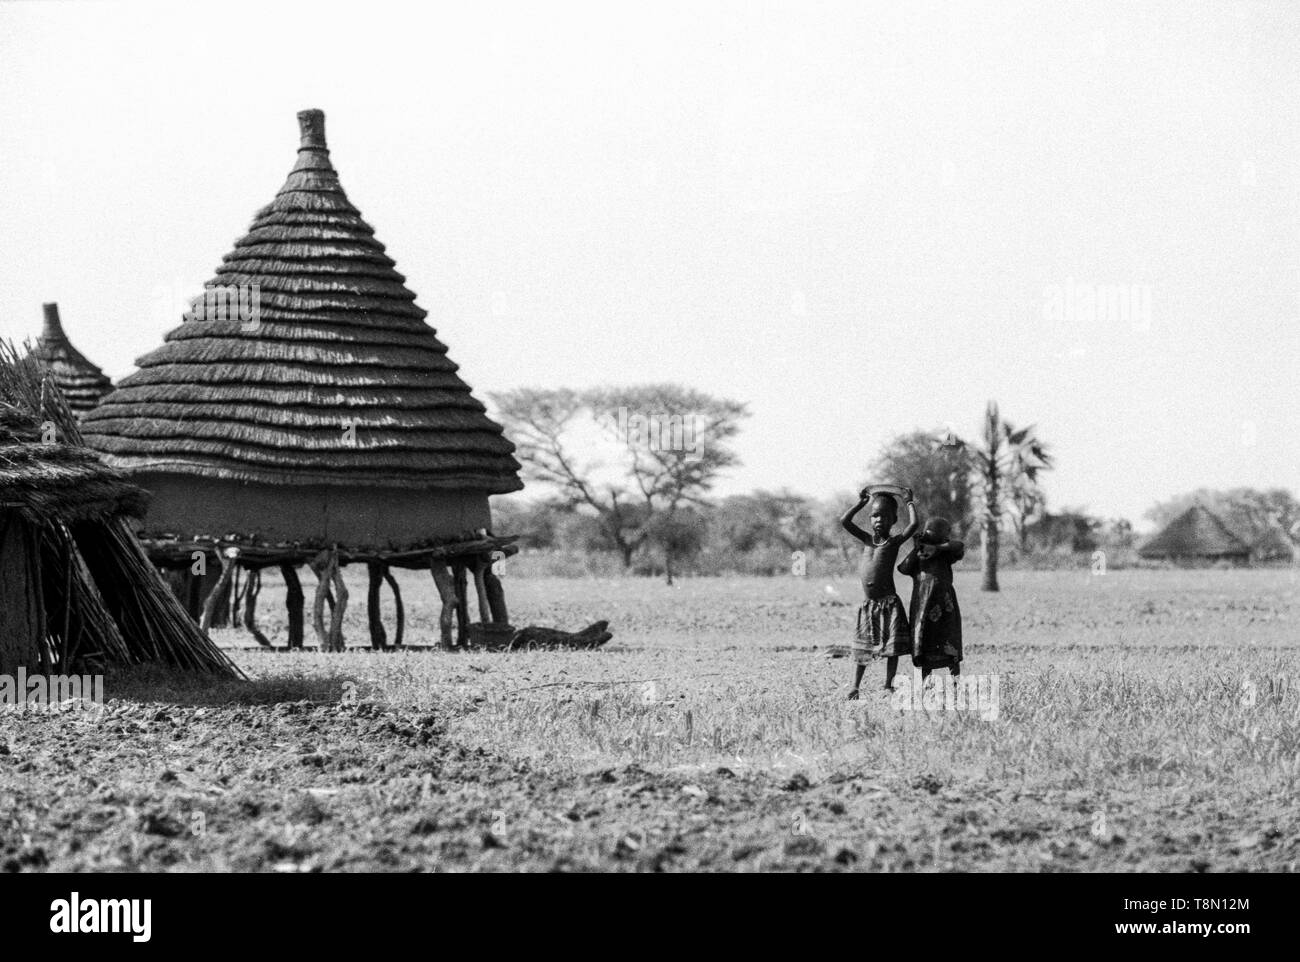 Children standing near the stores that are in stilts, Dinka tribe, Malual Kon, South Sudan - Stock Image